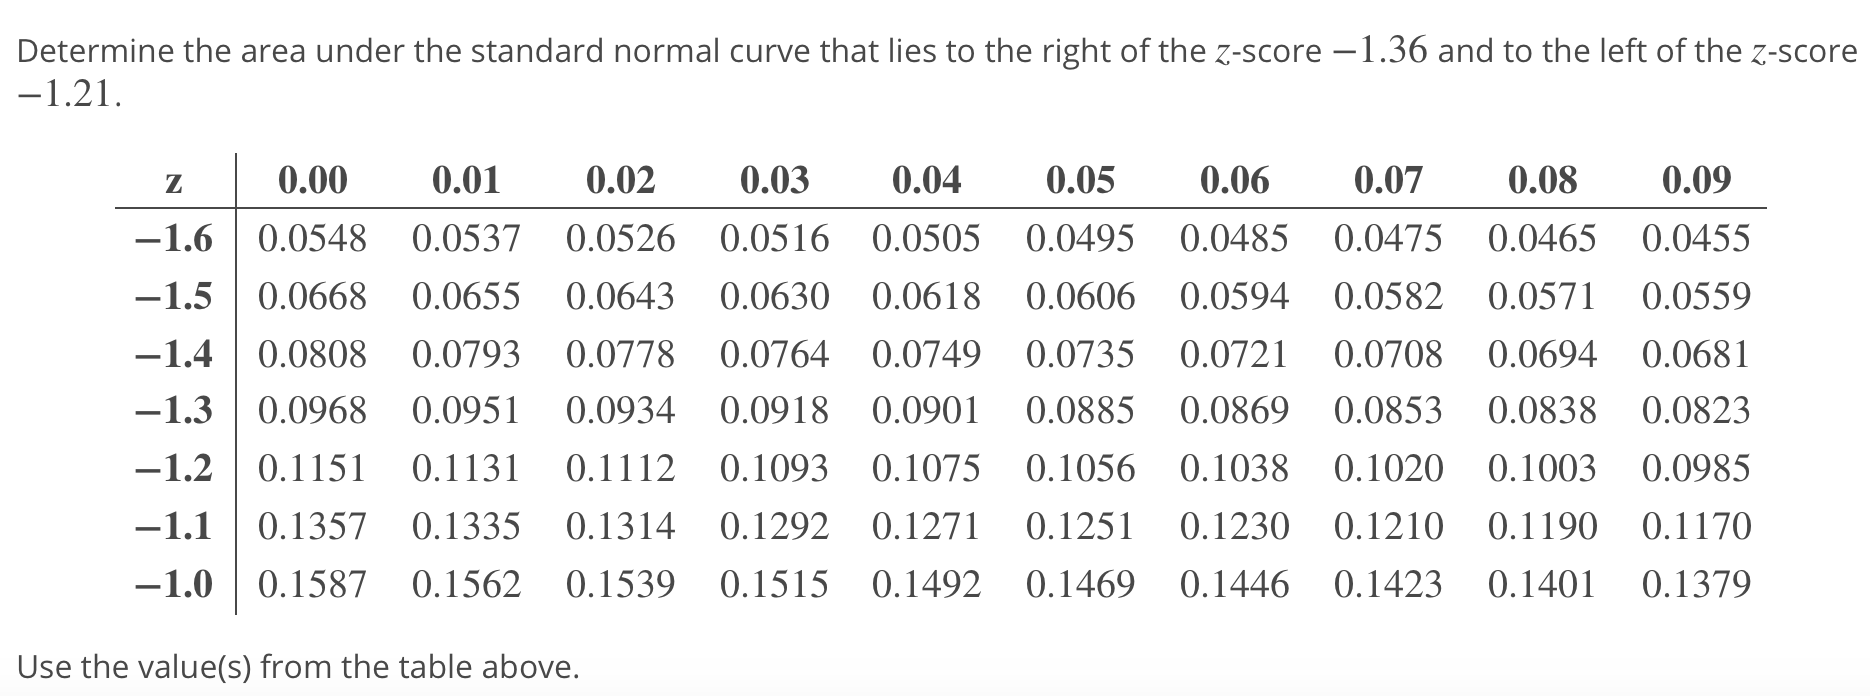 Determine the area under the standard normal curve that lies to the right of the z-score -1.36 and to the left of the z-score 0.00 0.01 0.02 0.03 0.04 0.05 0.06 0.07 0.08 0.09 -1.6 0.0548 0.0537 0.0526 0.0516 0.0505 0.0495 0.0485 0.0475 0.0465 0.0455 -1.5 0.0668 0.0655 0.0643 0.0630 0.0618 0.0606 0.0594 0.0582 0.0571 0.0559 -1.4|0.0808 0.0793 0.0778 0.0764 0.0749 0.0735 0.0721 0.0708 0.0694 0.0681 -1.3 0.0968 0.0951 0.0934 0.0918 0.0901 0.0885 0.0869 0.0853 0.0838 0.0823 -1.2 0.1151 0.1131 0.1112 0.1093 0.1075 0.1056 0.1038 0.1020 0.1003 0.0985 一1.110. 1357 0. 1335 0. 13 14 0. 1292 0.1271 0.1251 0.1230 0.1210 0.1190 0.1170 -1.0 0.1587 0.1562 0.1539 0.1515 0.1492 0.1469 0.1446 0.1423 0.1401 0.1379 Use the value(s) from the table above.